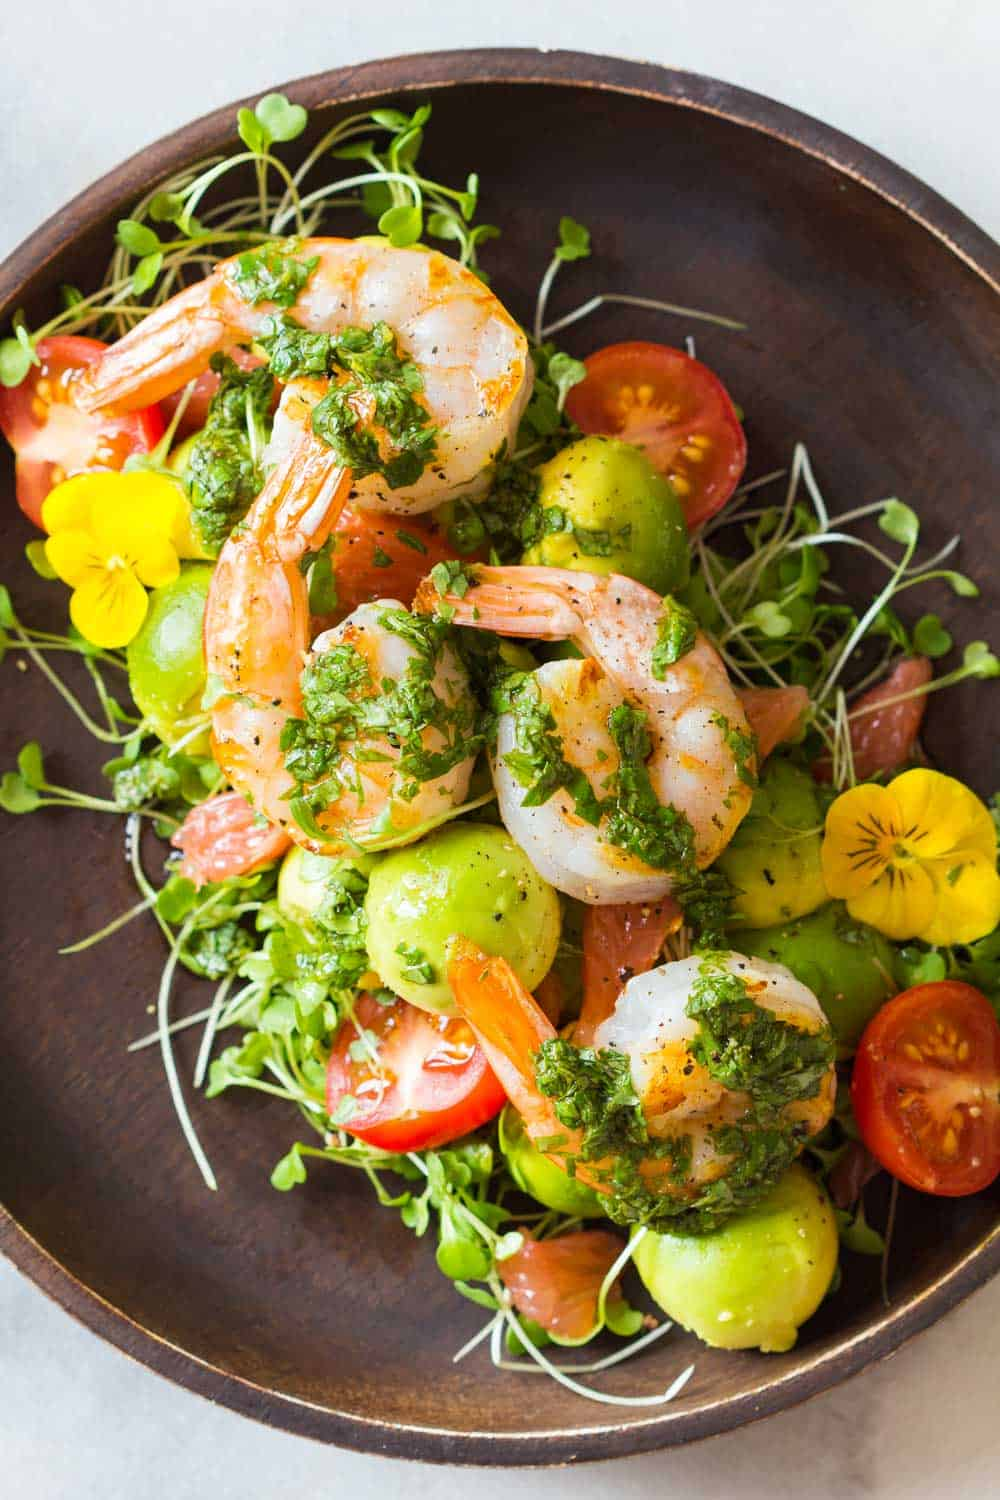 Healthy Cookout Recipes: Mexican-Style Shrimp Avocado Salad